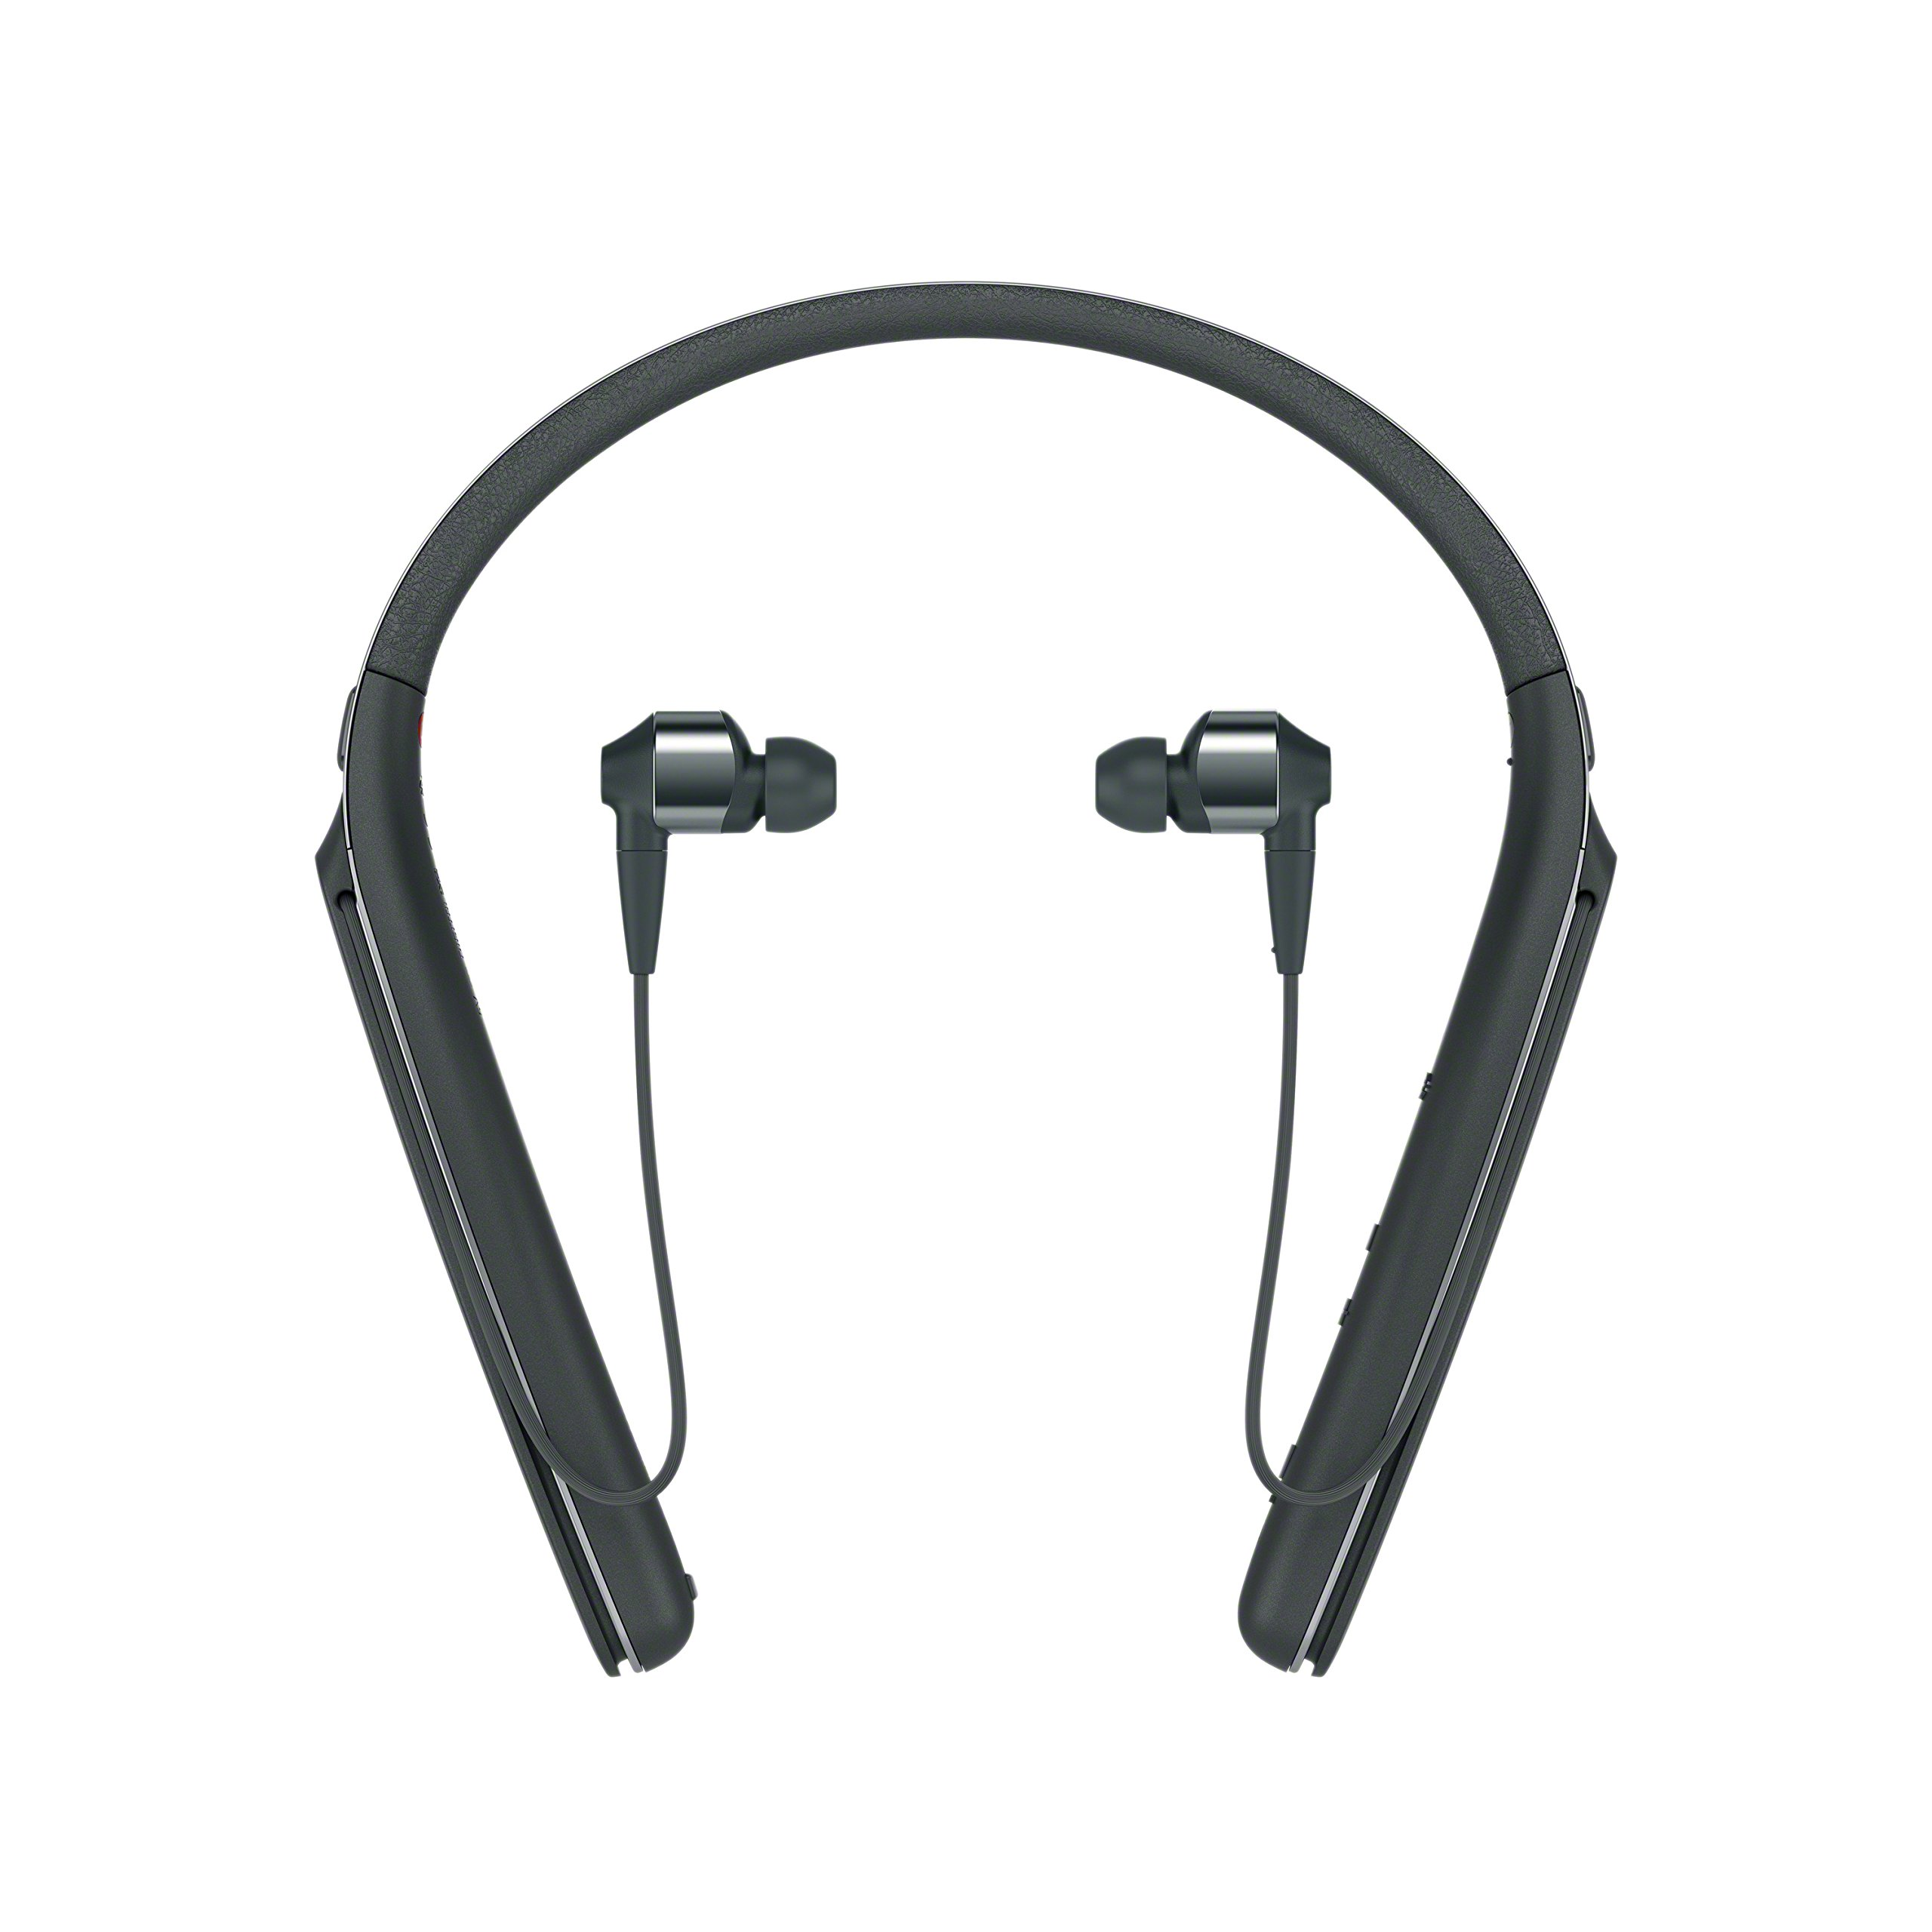 Sony Premium Noise Cancelling Wireless Behind-Neck In Ear Headphones - Black (WI1000X/B) by Sony